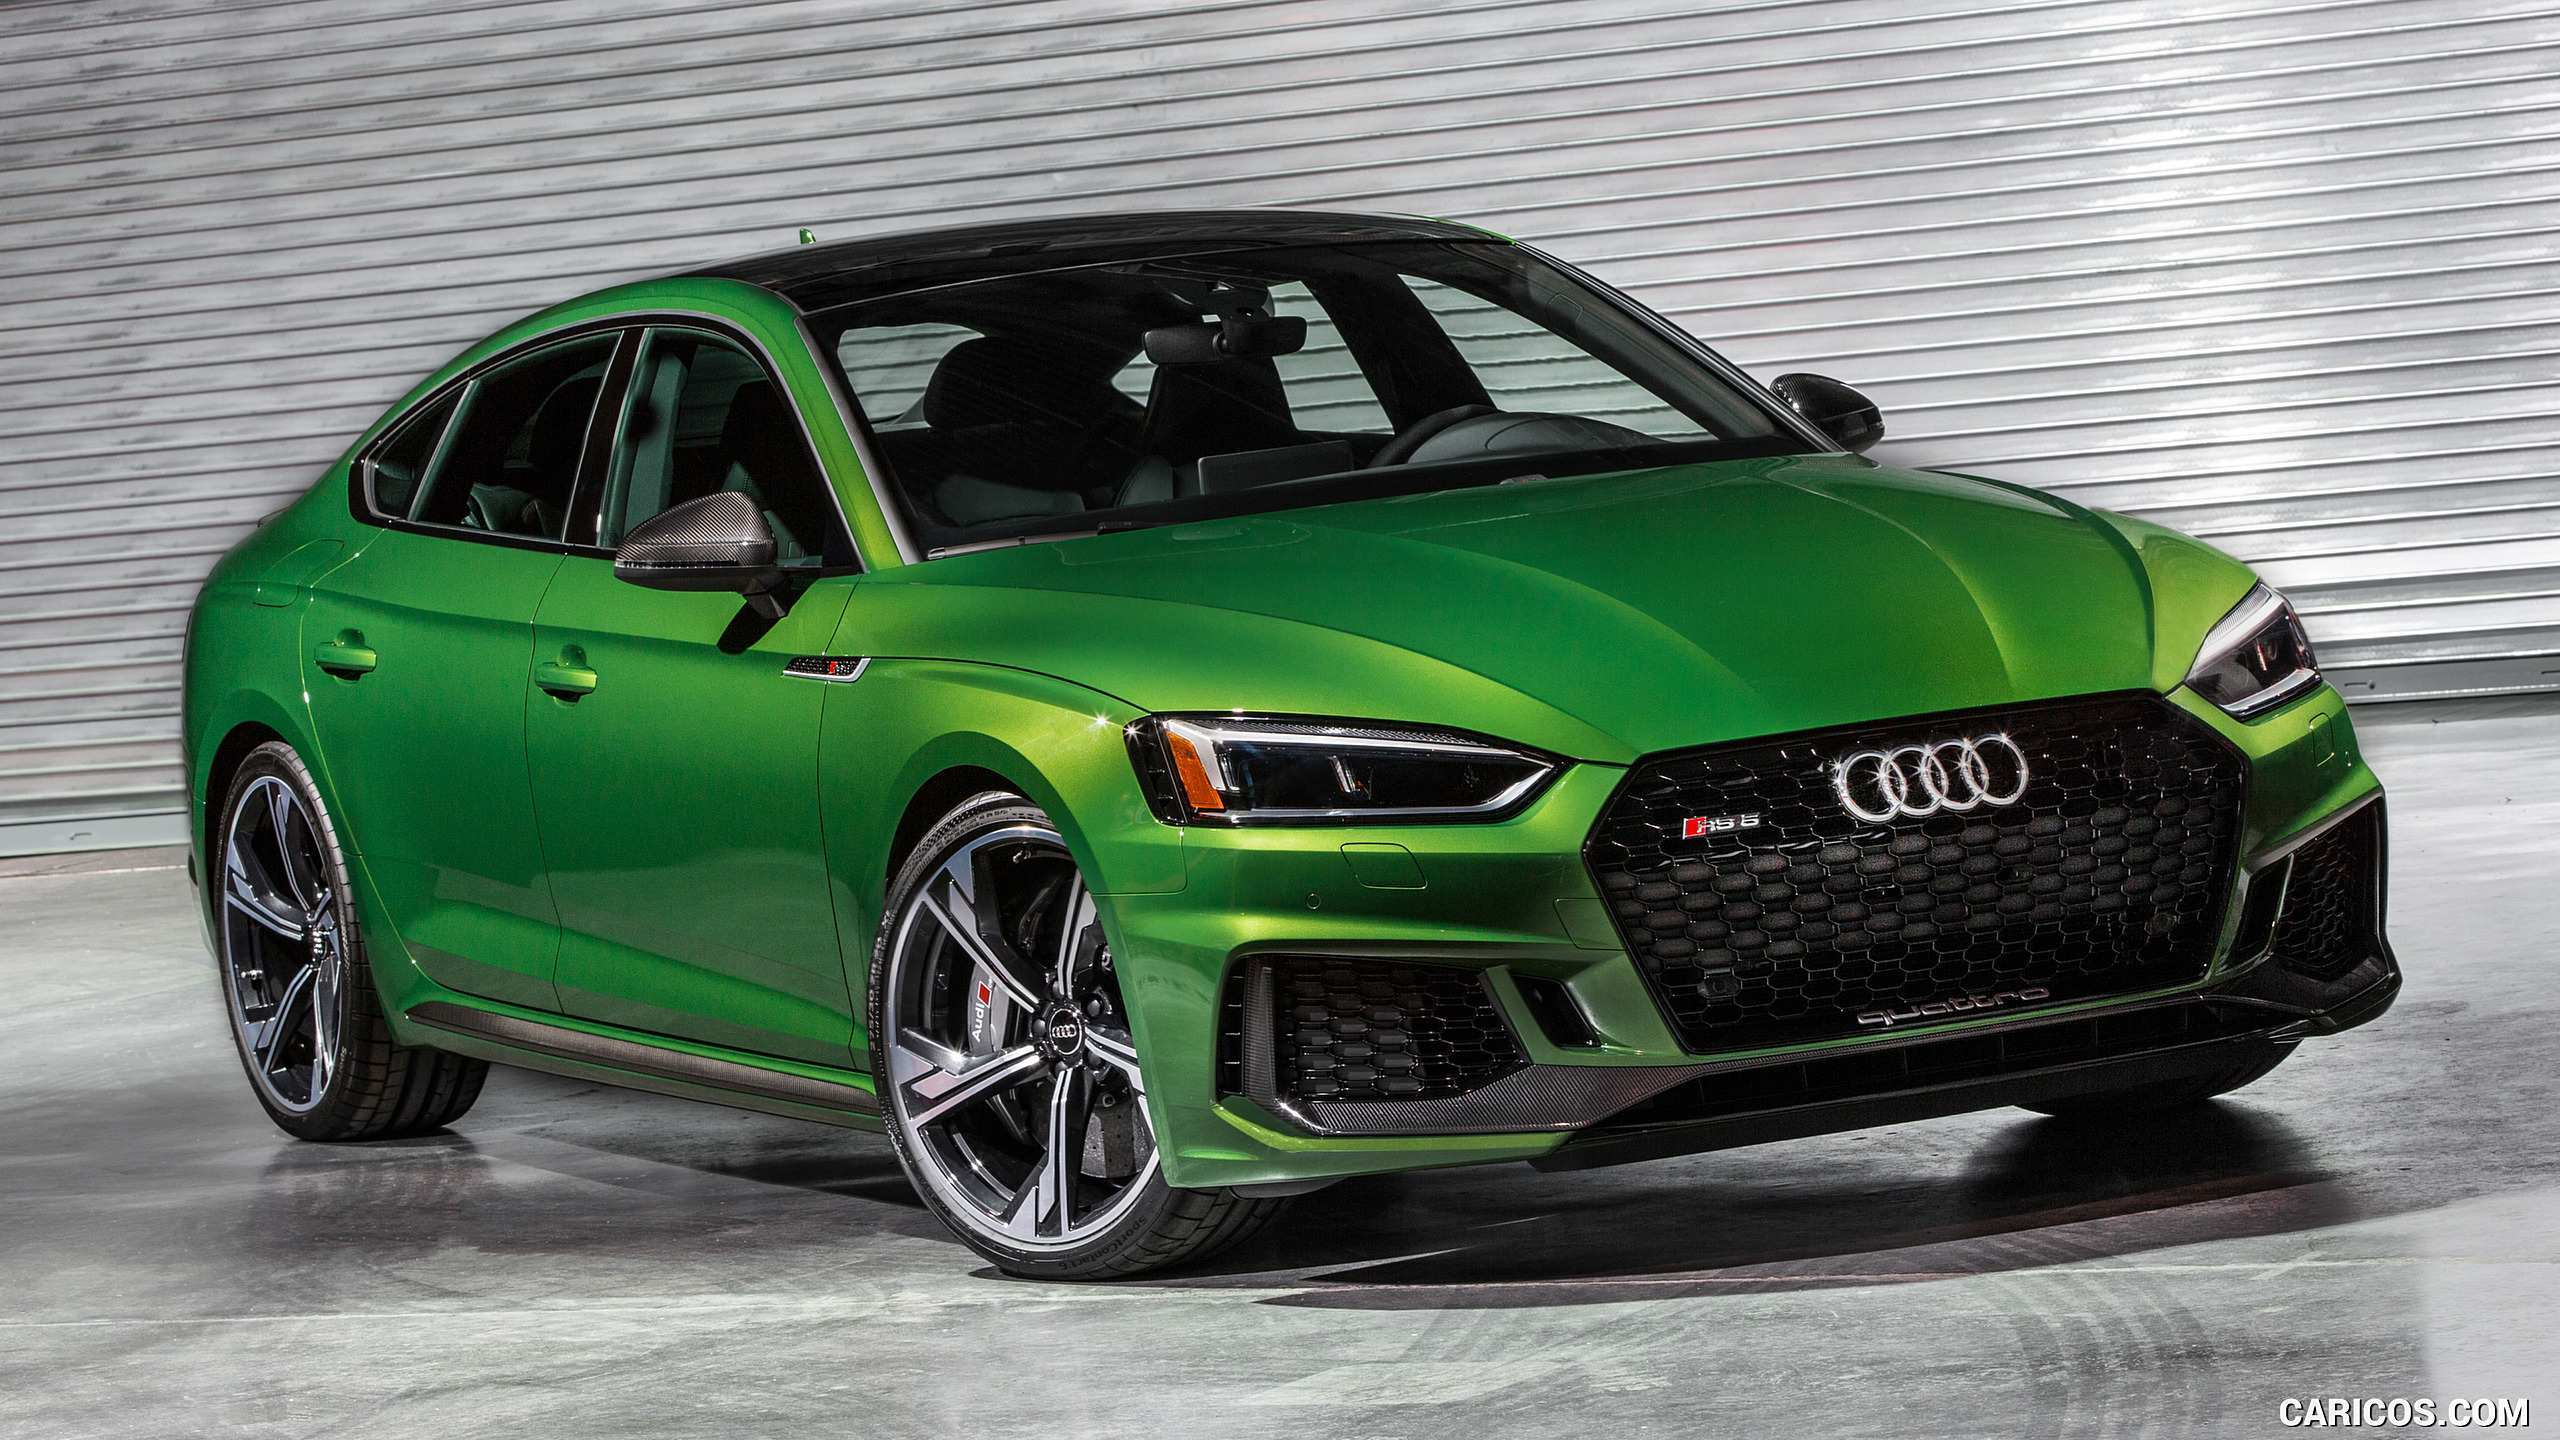 28 All New 2019 Audi Green First Drive for 2019 Audi Green